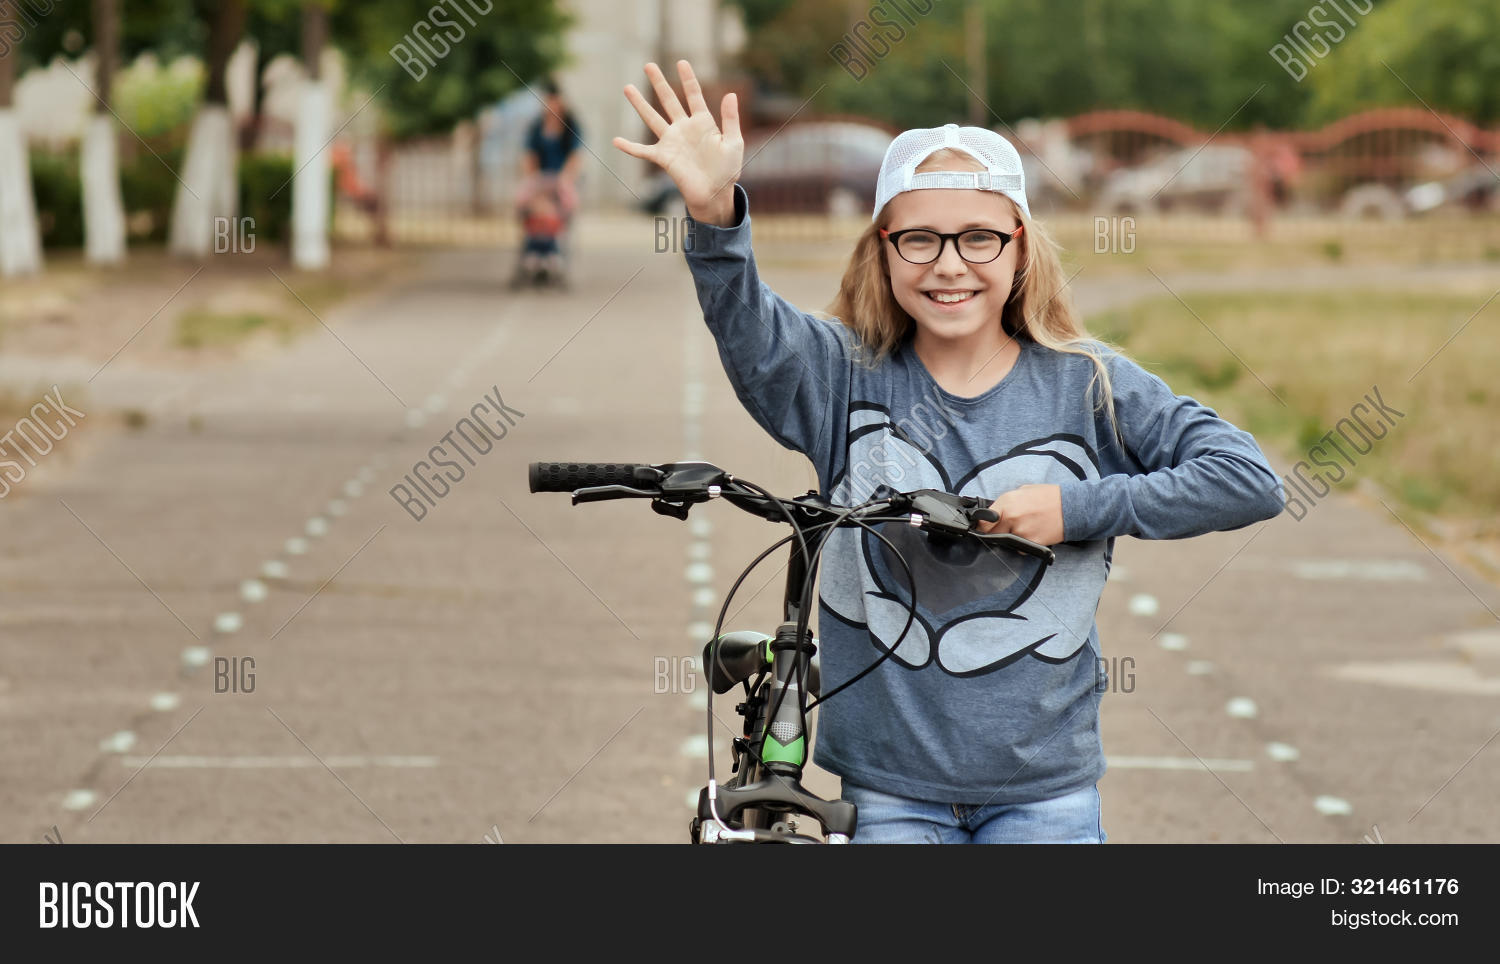 10,11,active,activity,beautiful,bicycle,bike,biking,caucasian,cheerful,child,childhood,copy,cute,cycle,cyclist,eleven,face,family,forest,fun,girl,happy,healthy,helmet,kid,leisure,lifestyle,little,motion,nature,one,outside,park,people,person,pink,preschooler,pretty,recreation,ride,safe,season,small,sport,summer,thumbs-up,years,young,youth